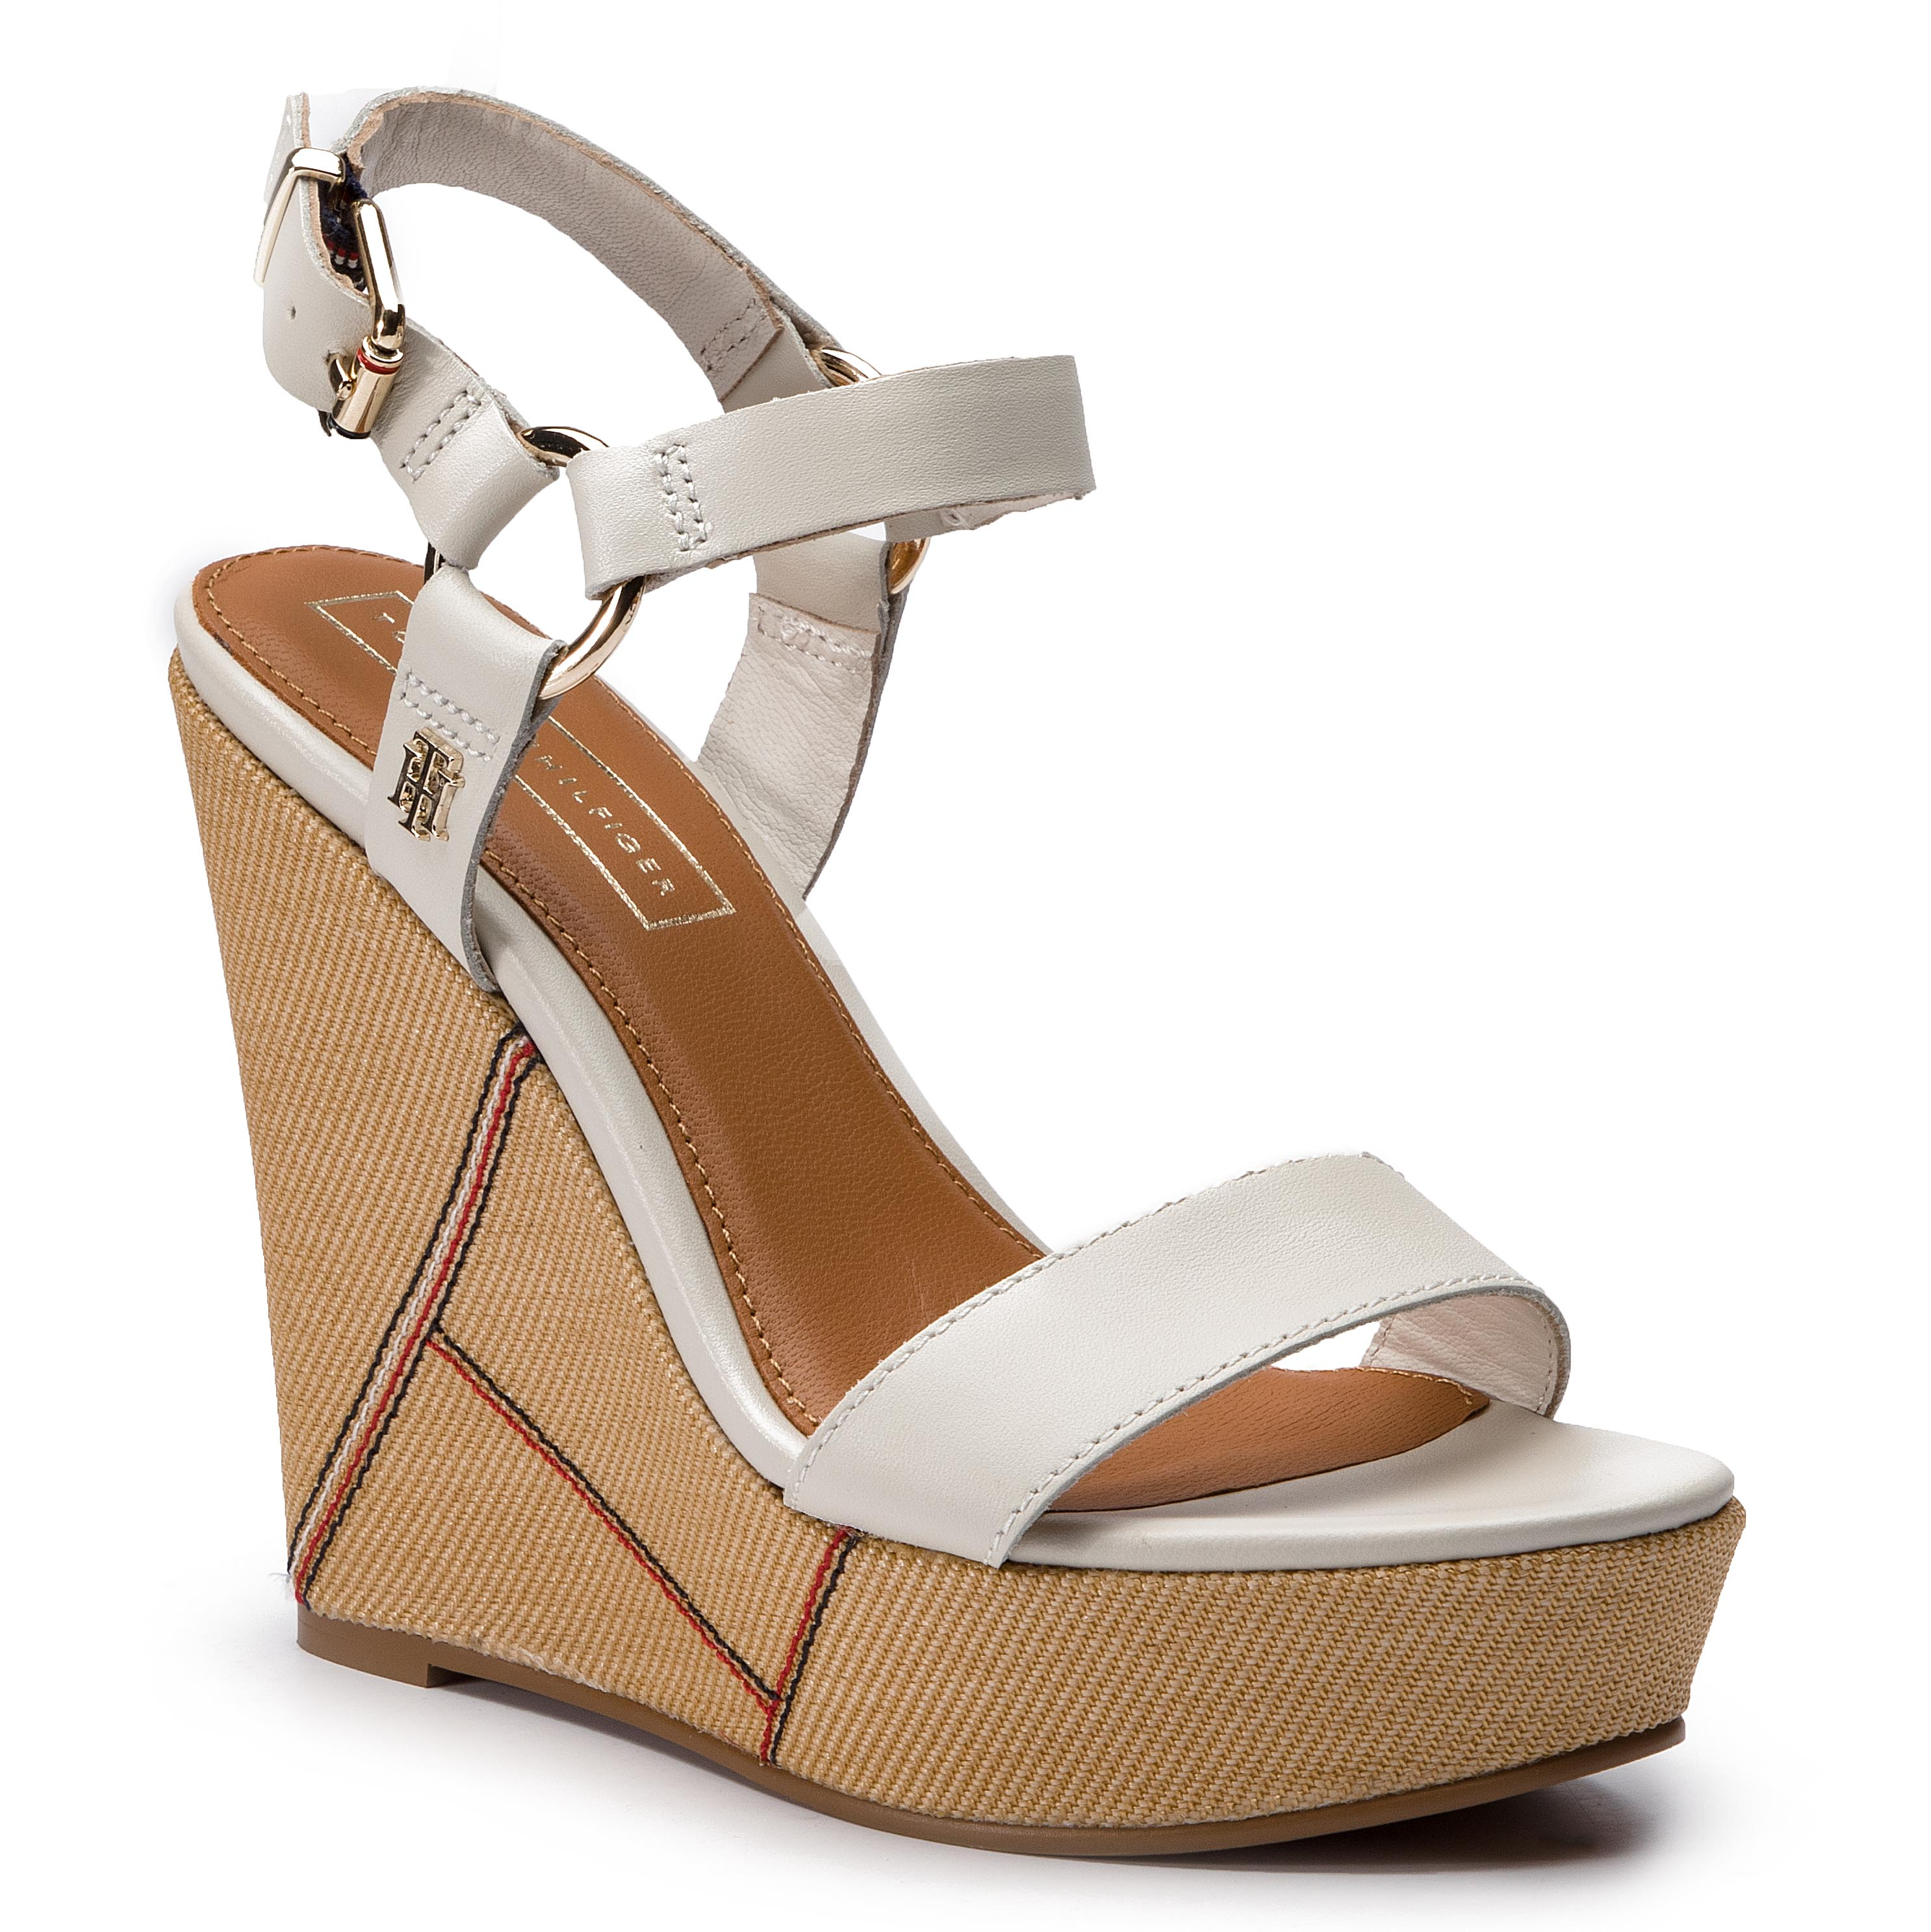 70441c303 Sandals TOMMY HILFIGER Elevated Leather Wedge Sandal FW0FW03943 Whisper  White 121